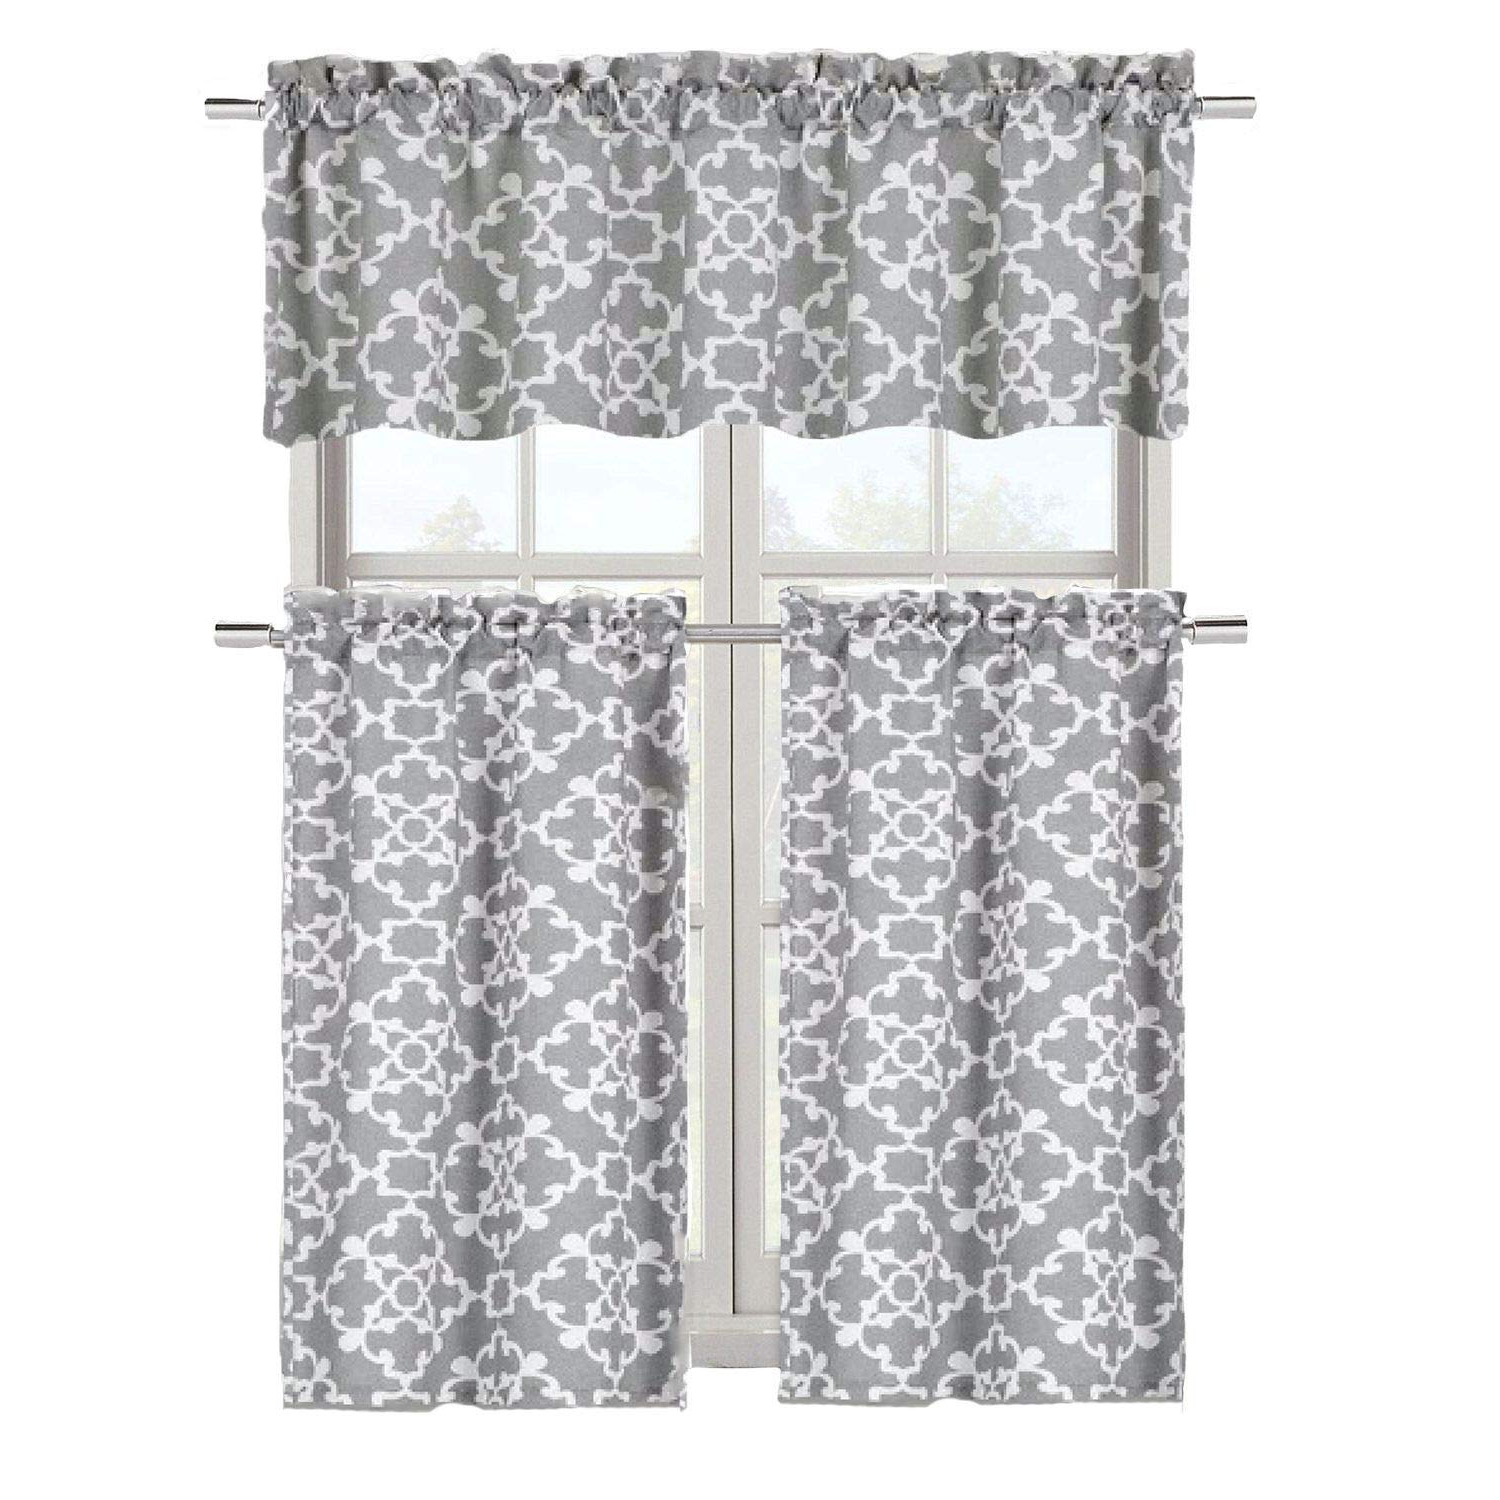 Most Popular Goodgram Ultra Luxurious Grey Shabby 3 Piece Kitchen Curtain Tier & Valance Set By In Microfiber 3 Piece Kitchen Curtain Valance And Tiers Sets (Gallery 17 of 20)